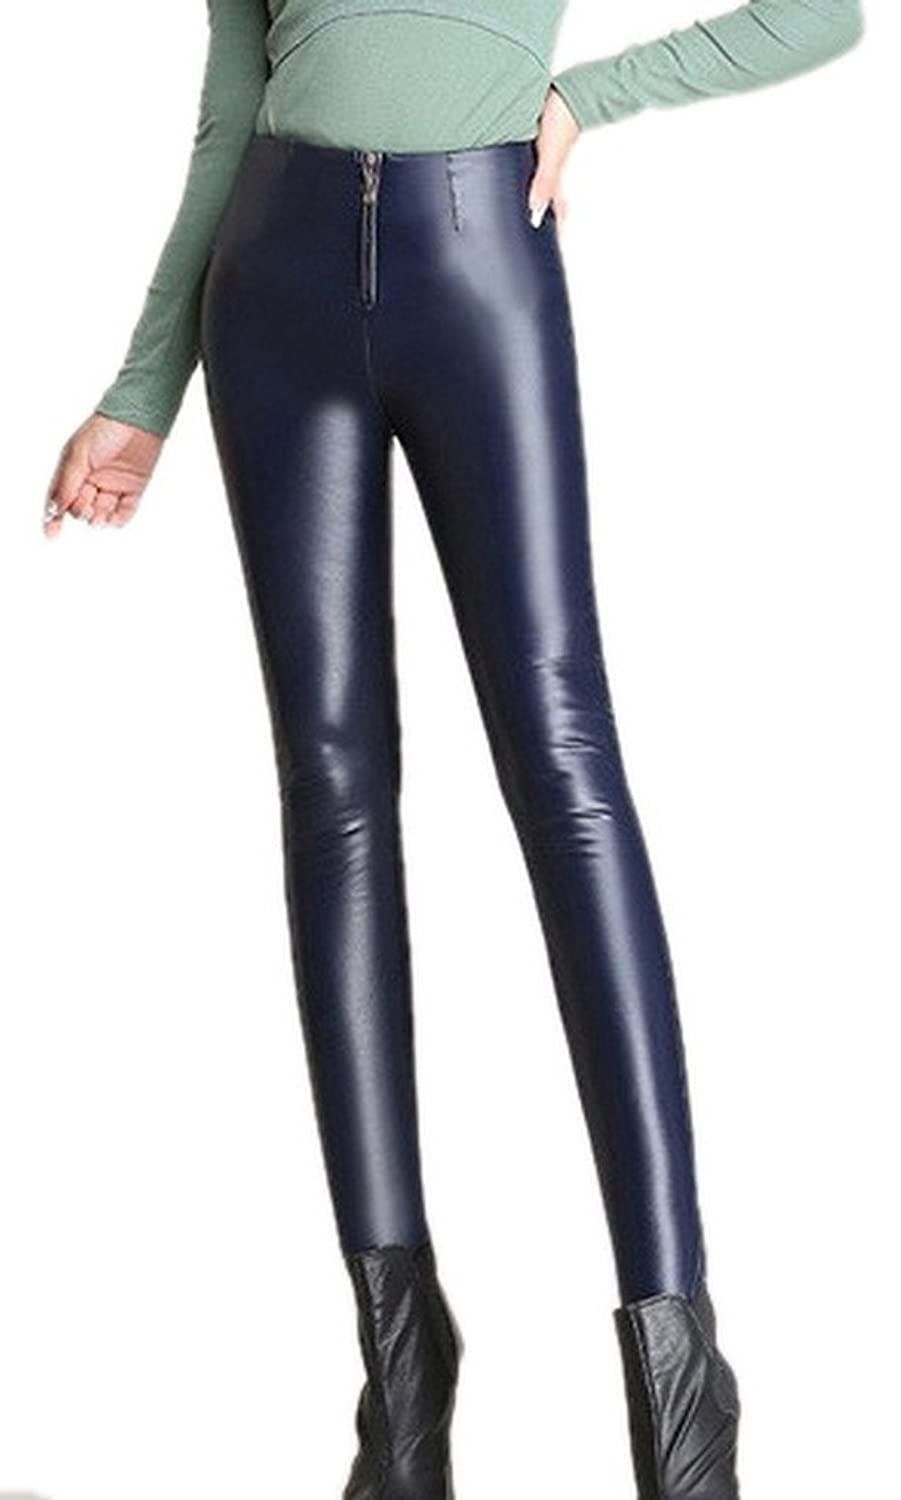 Toyobuy Thick Pu Leather Skinny Zip Winter Legging Pants Tights Trouser